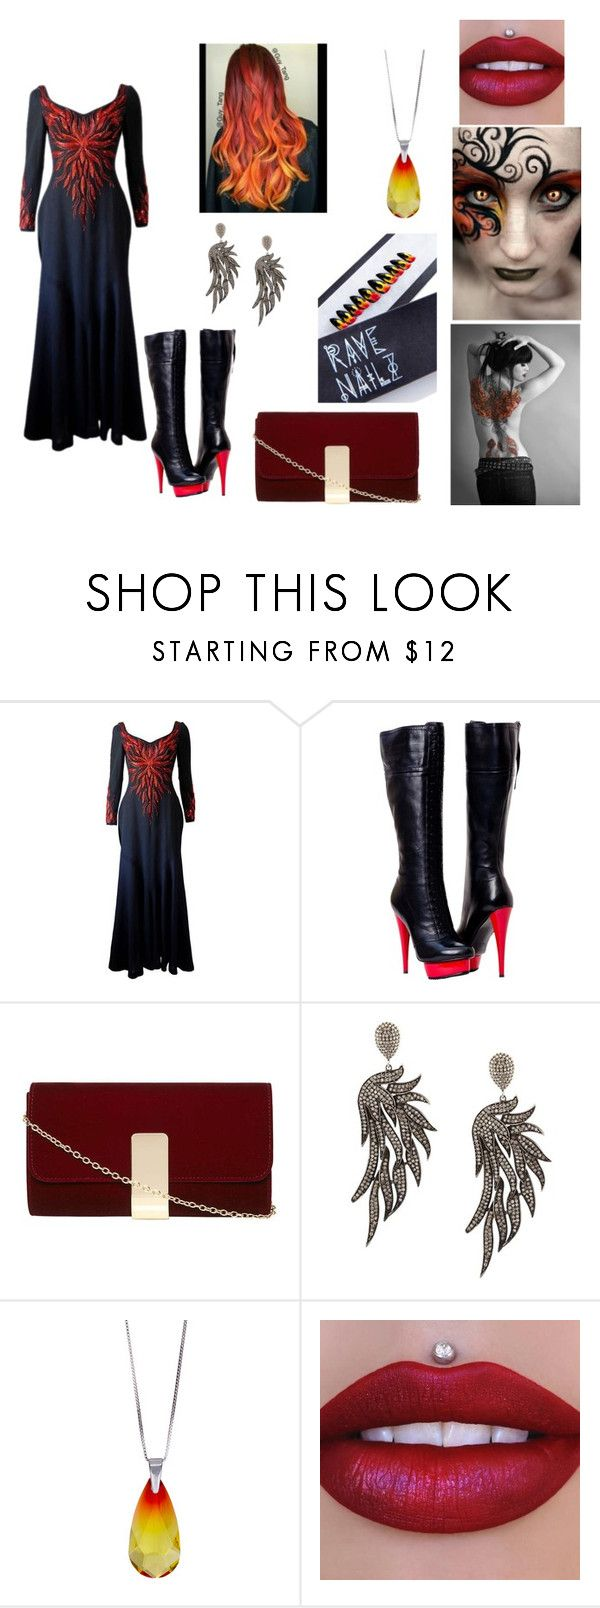 """""""fire phoenix"""" by ashwee-marie ❤ liked on Polyvore featuring Murray Arbeid, Paolo Shoes, Dorothy Perkins, Carole Shashona, Sevil Designs and Rave Nailz"""